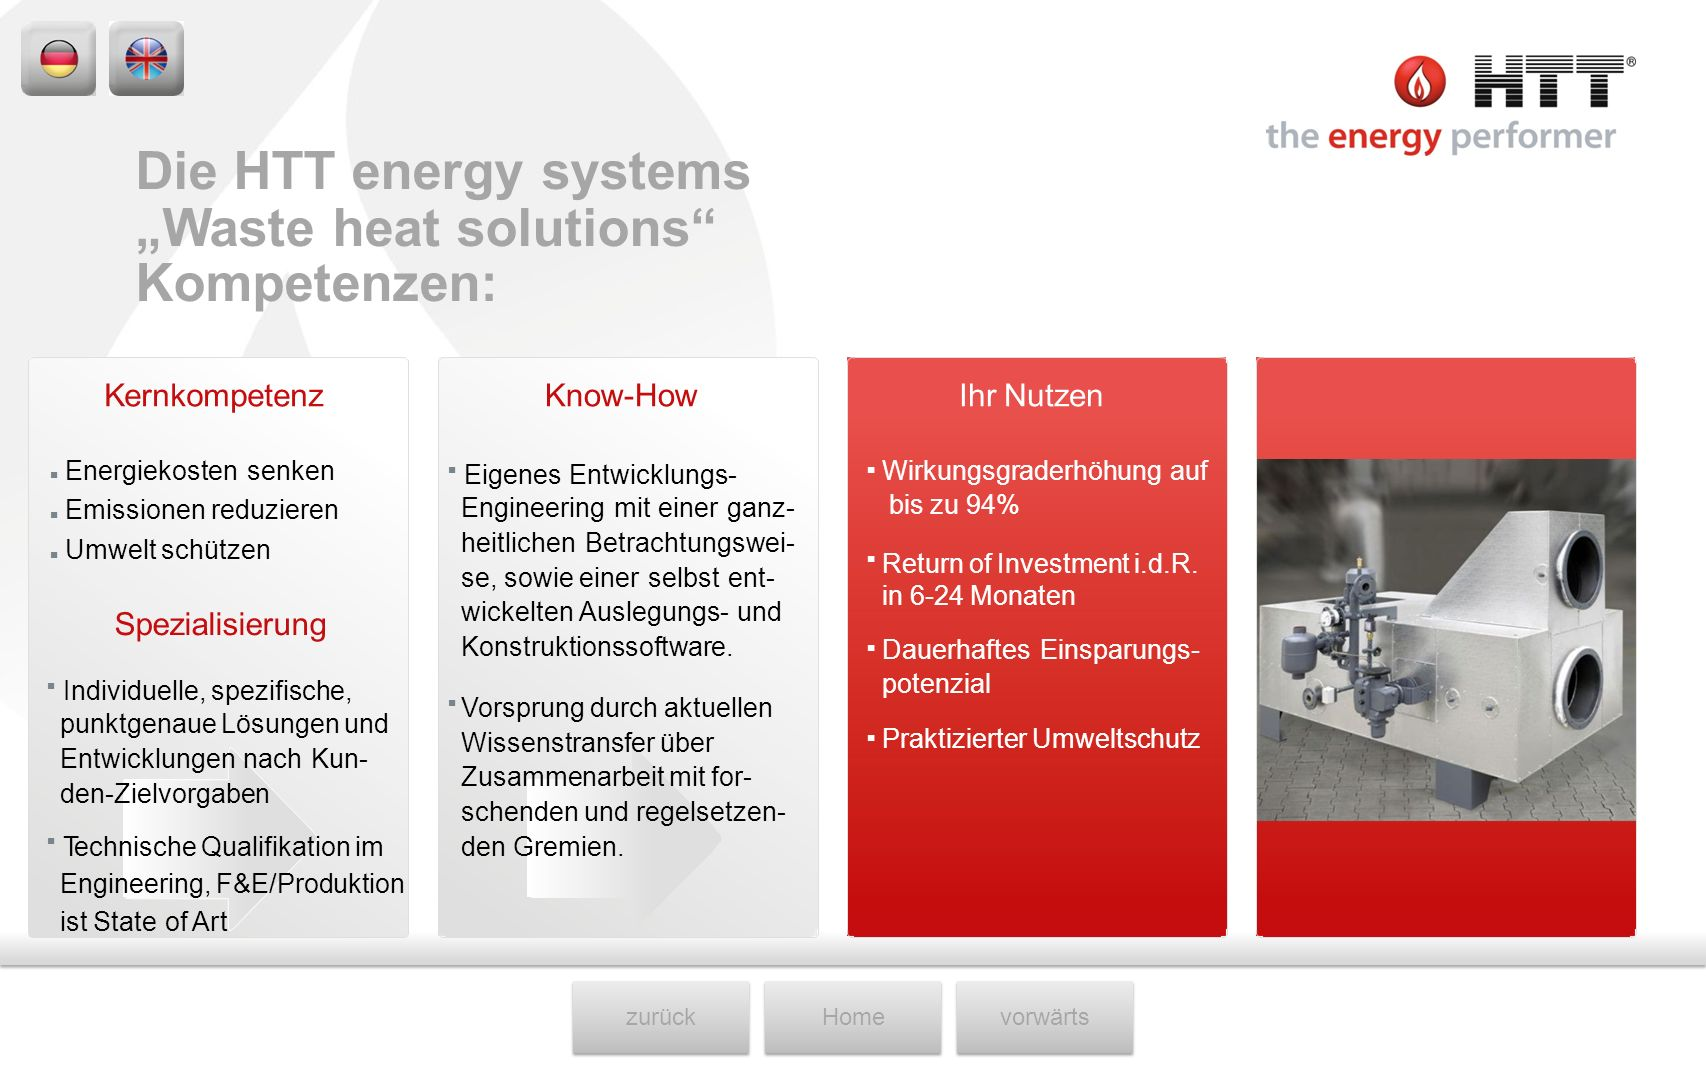 """Waste heat solutions Kompetenzen:"